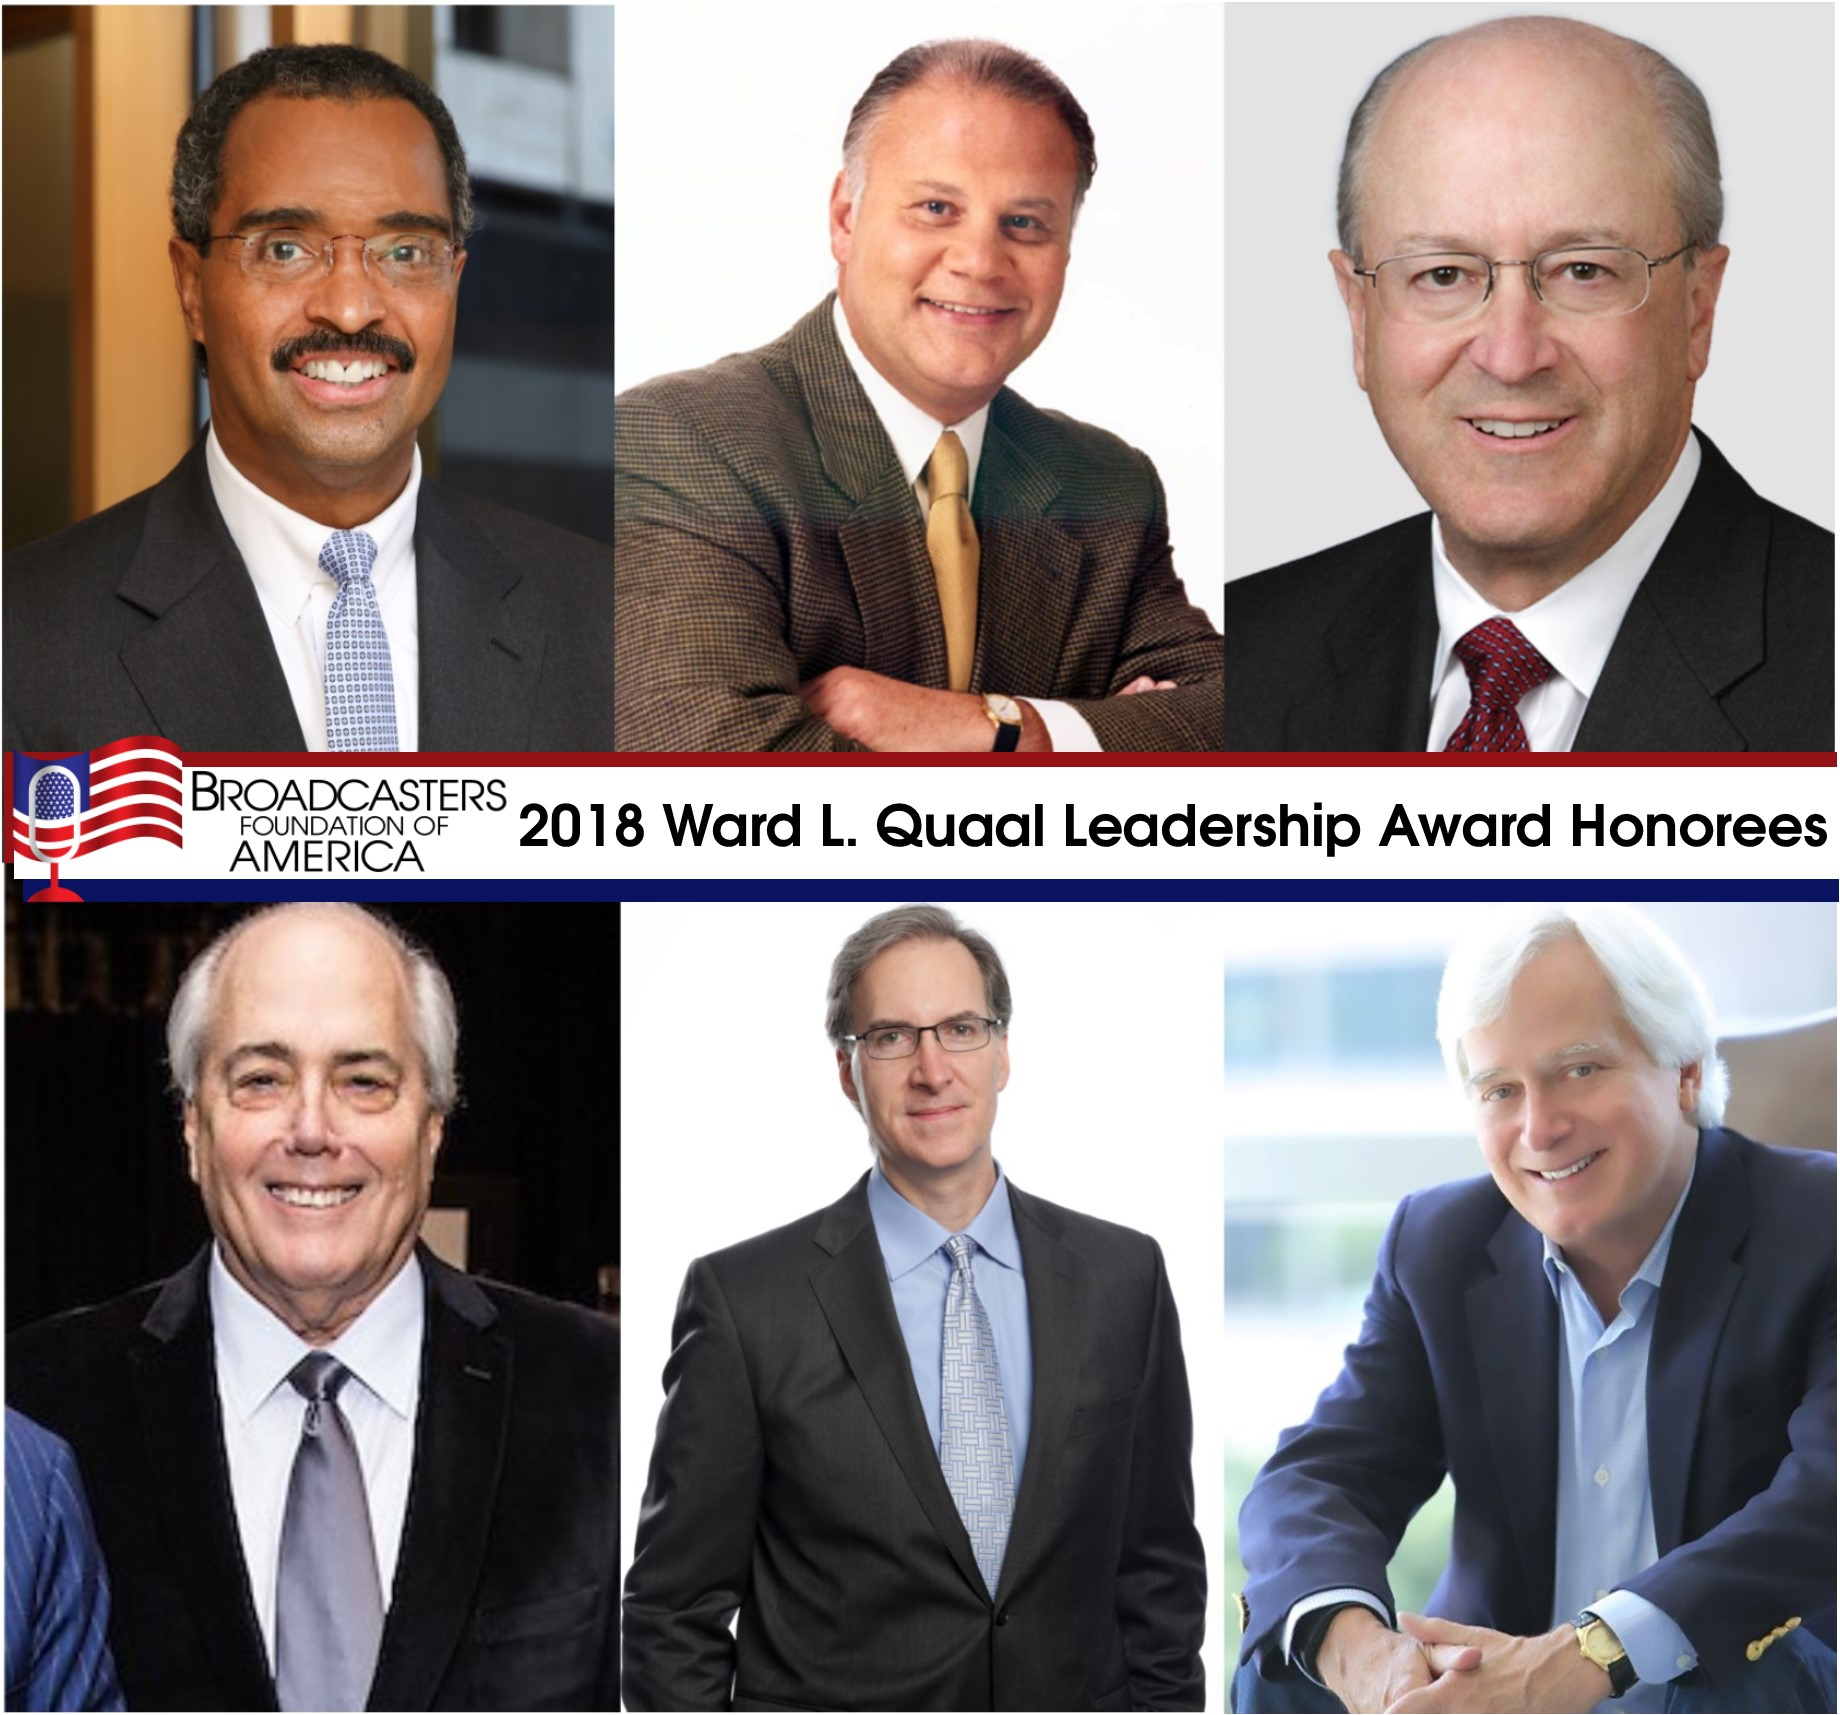 2018 Leadership Award Honorees Announced